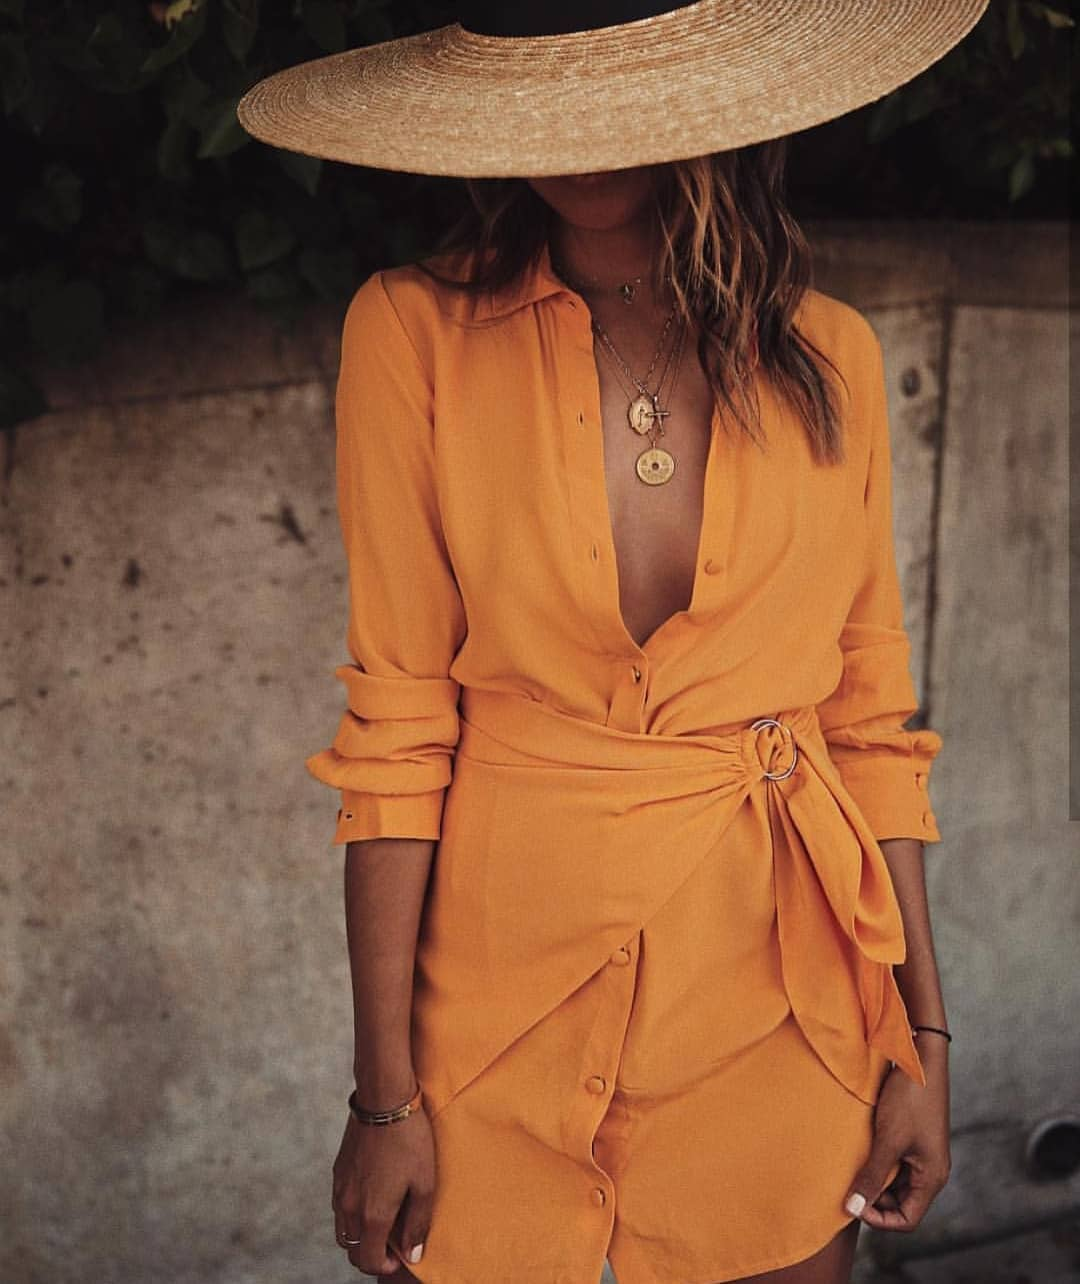 Wrap Shirtdress In Orange-Yellow For Summer Vacation 2020